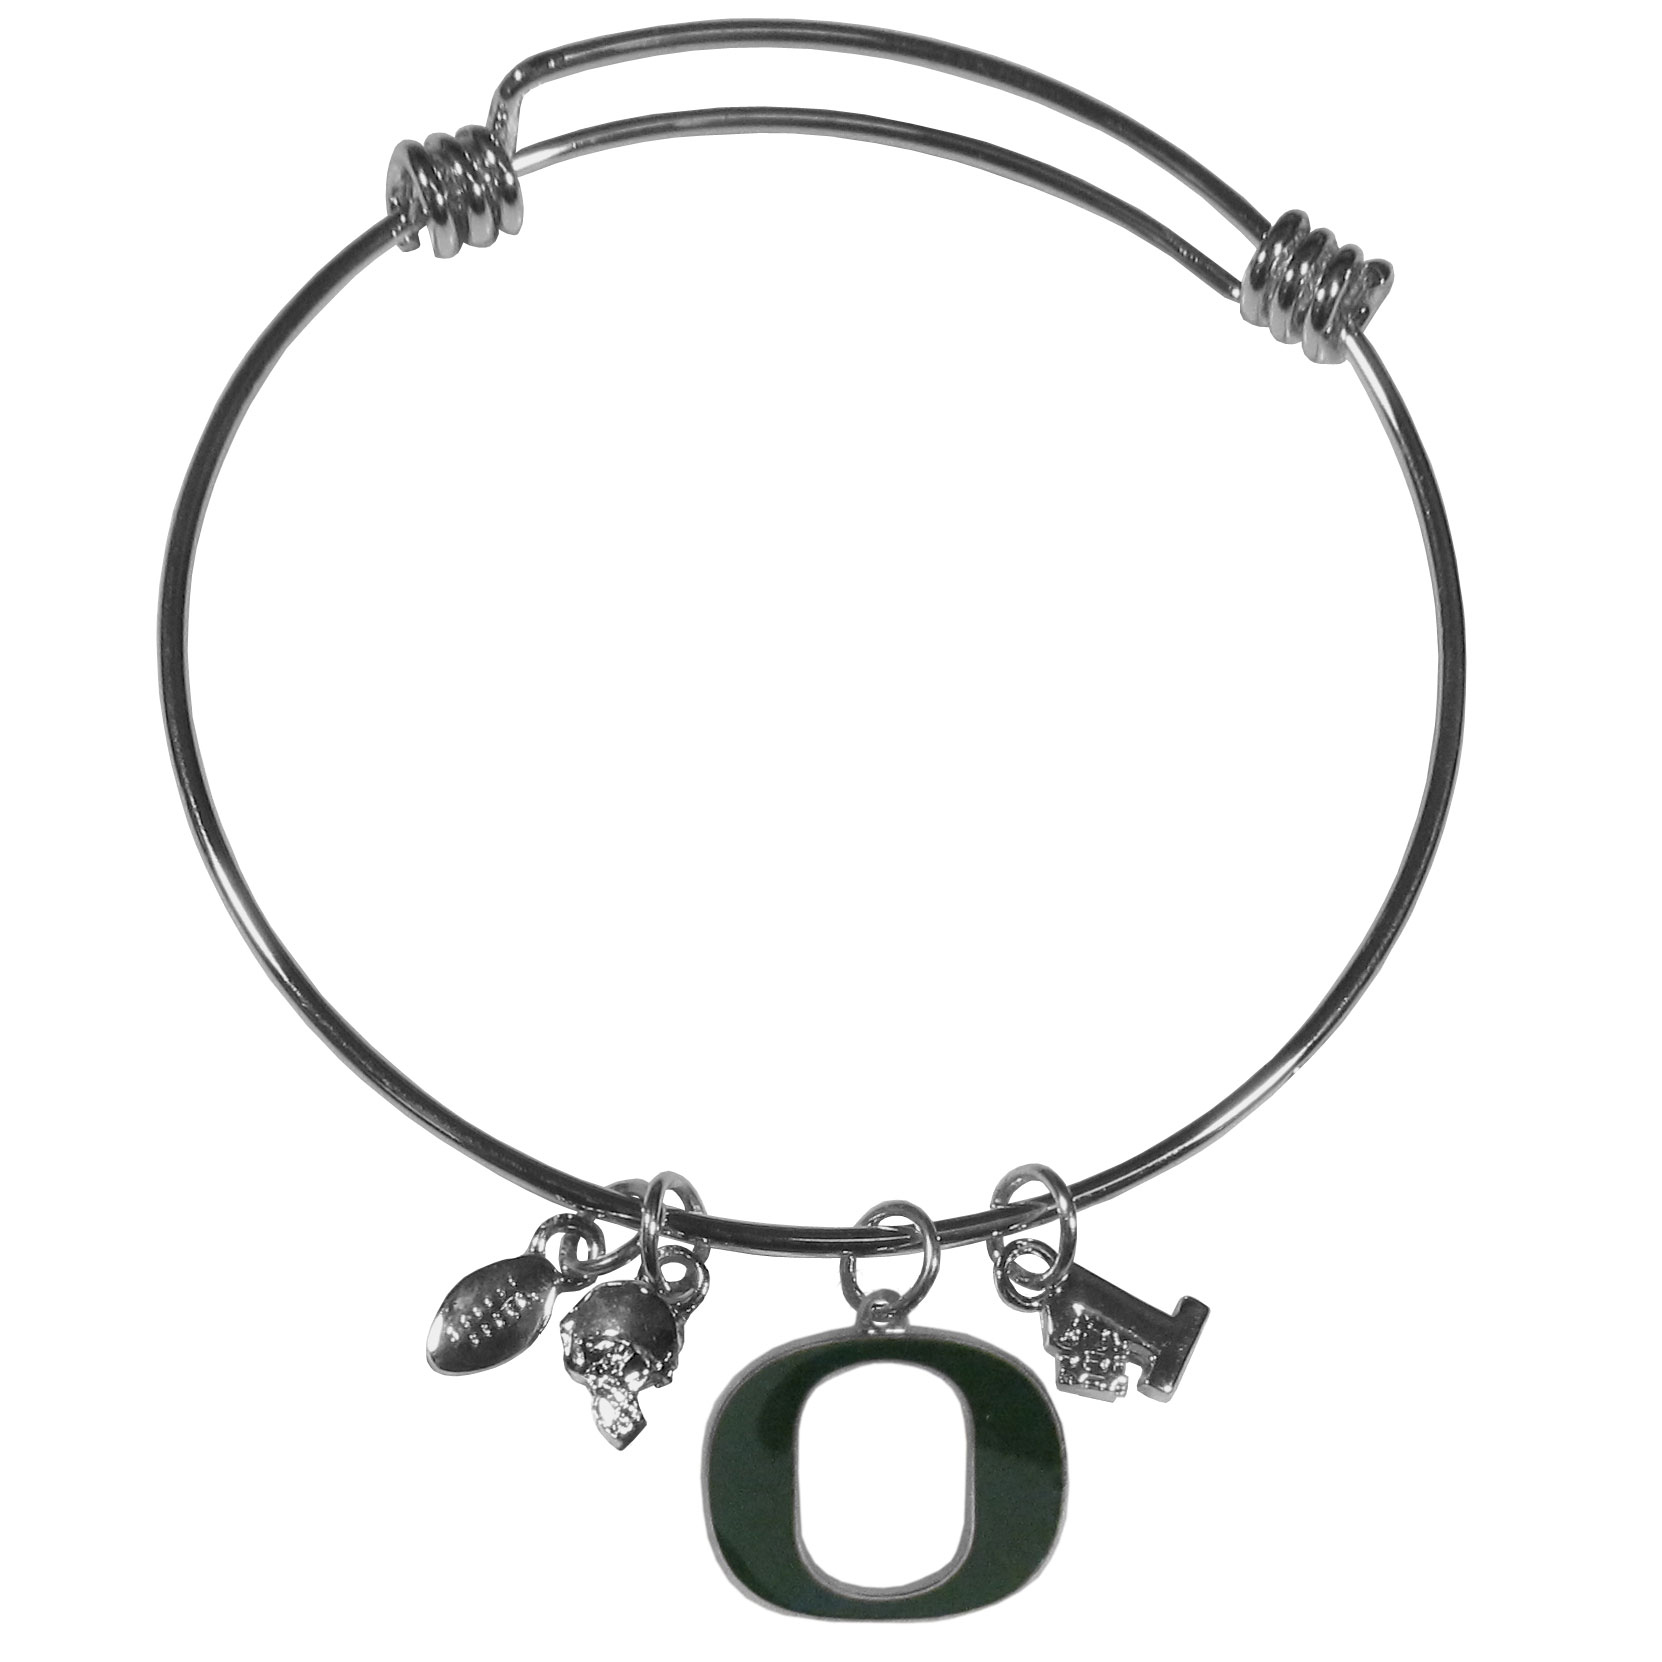 Oregon Ducks Charm Bangle Bracelet - Adjustable wire bracelets are all the rage and this Oregon Ducks bracelet matches the popular trend with your beloved team. The bracelet features 4 charms in total, each feature exceptional detail and the team charm has enameled team colors.